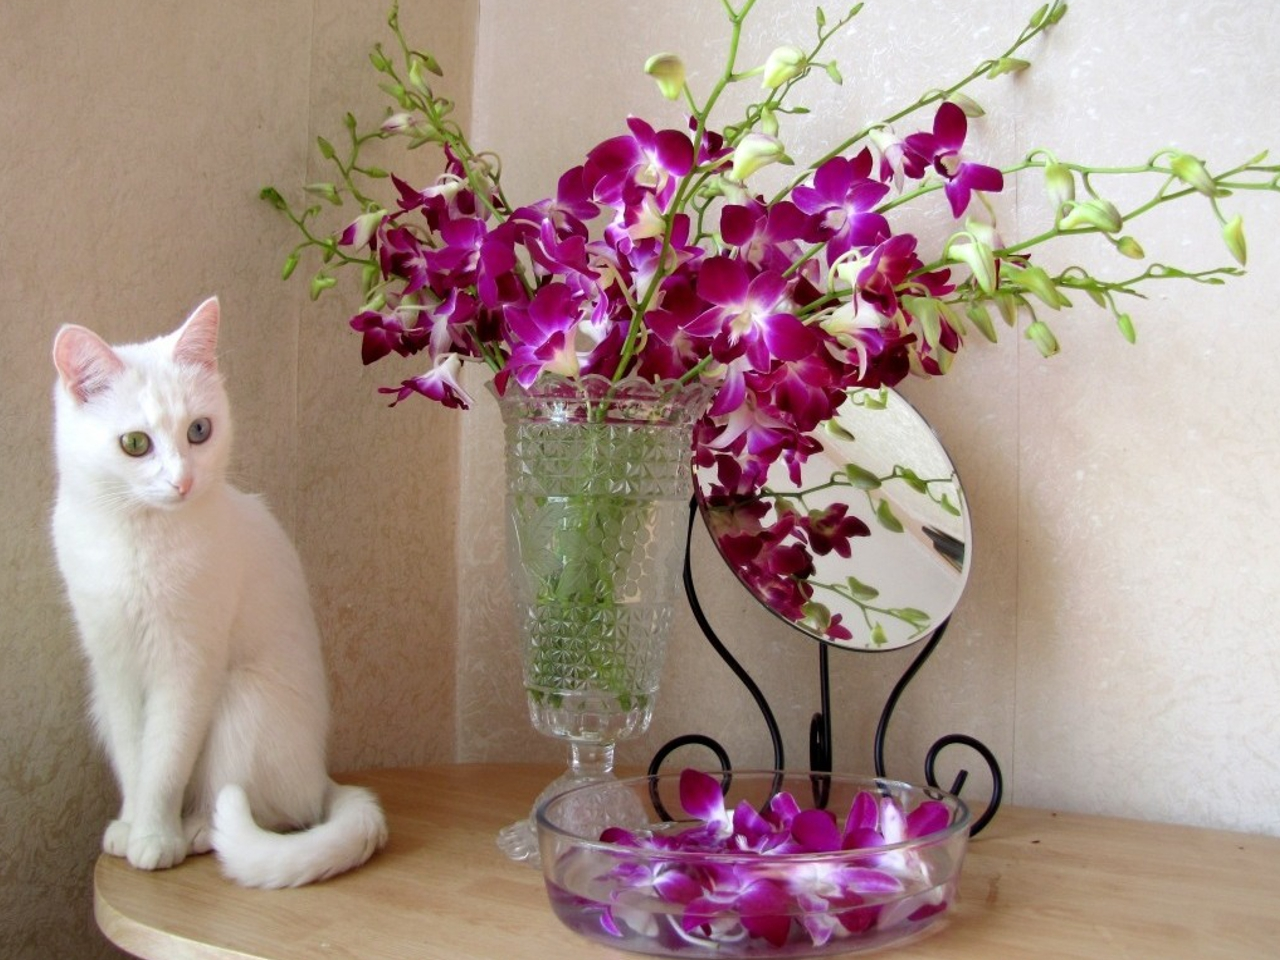 Cat flower vase wallpapers collection 7 wallpapers cat flower vase 7026820 reviewsmspy